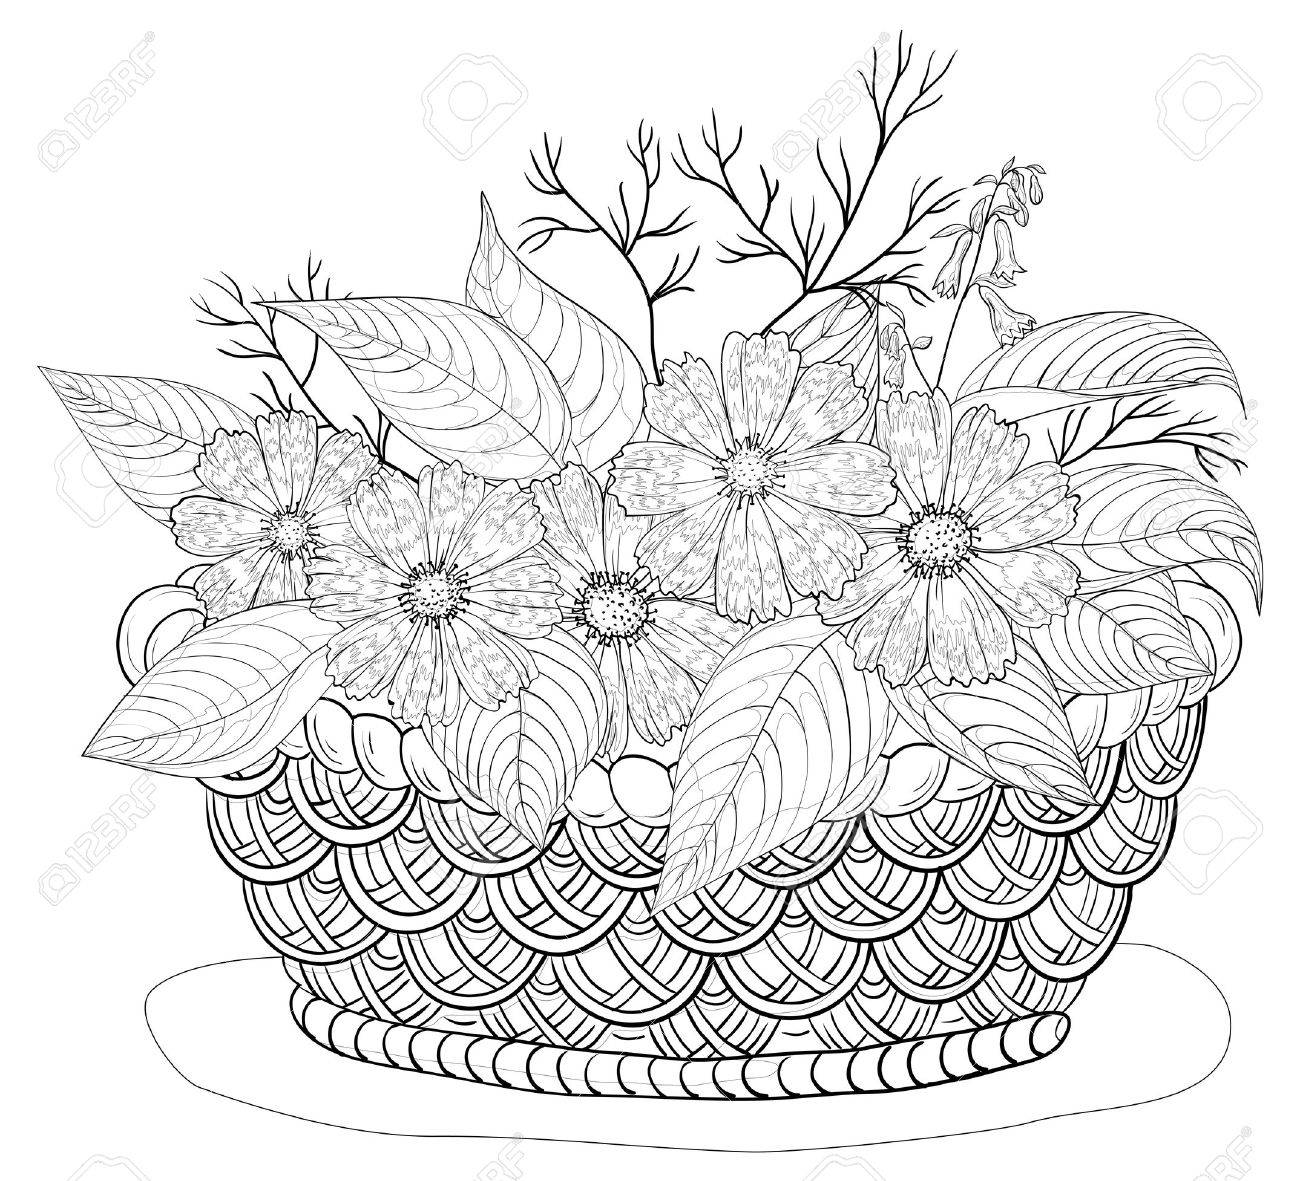 Wattled basket with flowers cosmos and leaves, black contours Vector - 16701242